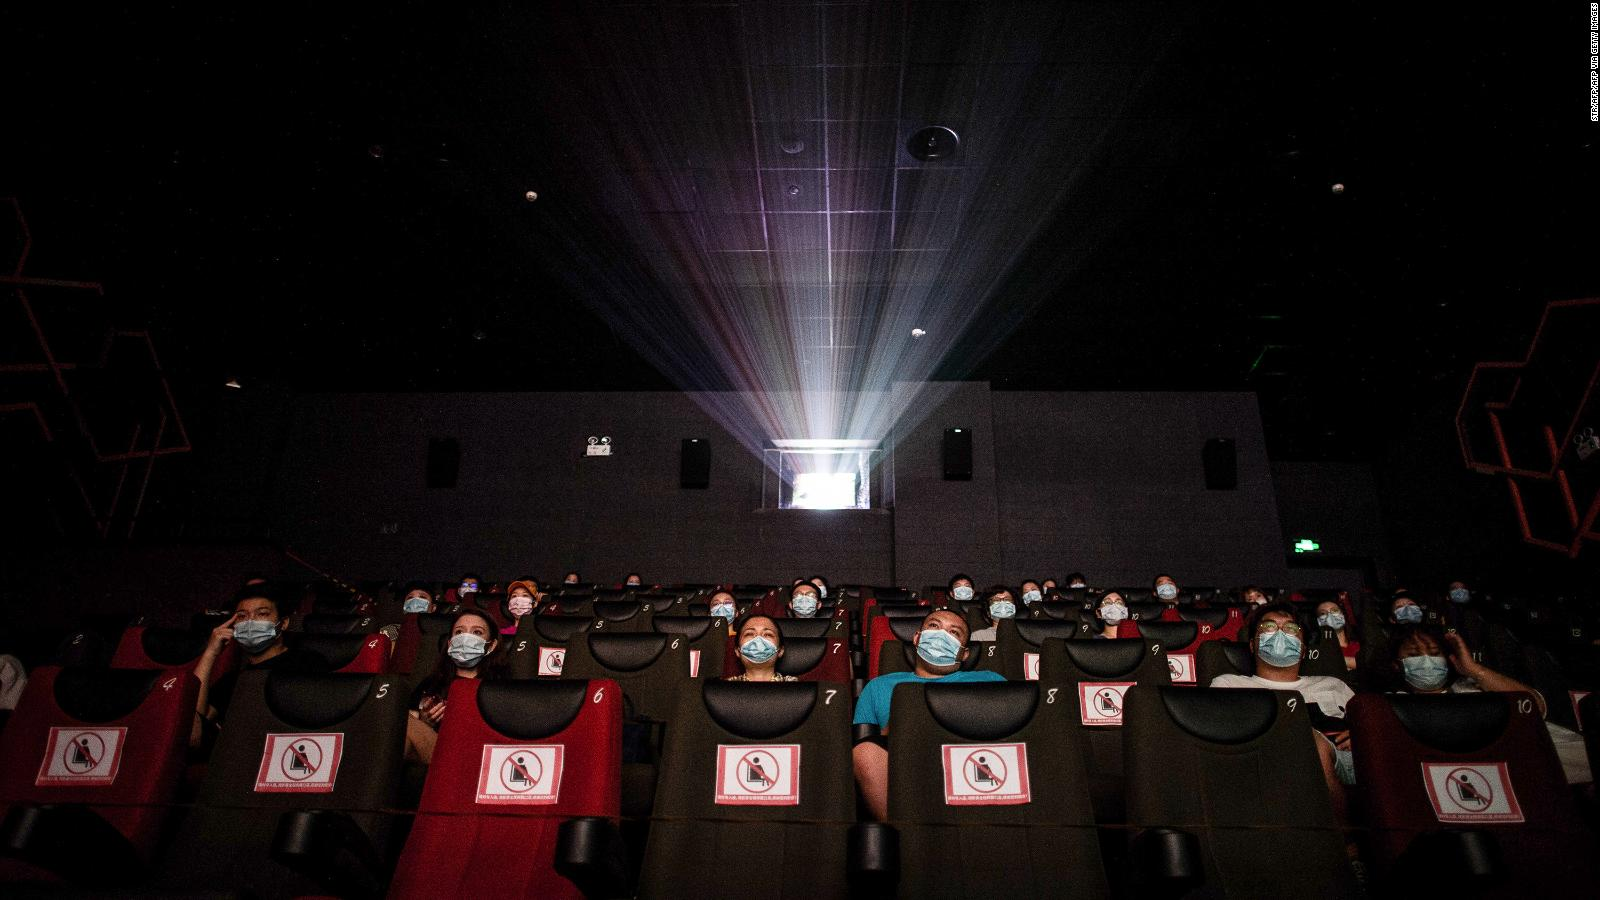 Reabren los cines en China con restricciones | Video | CNN